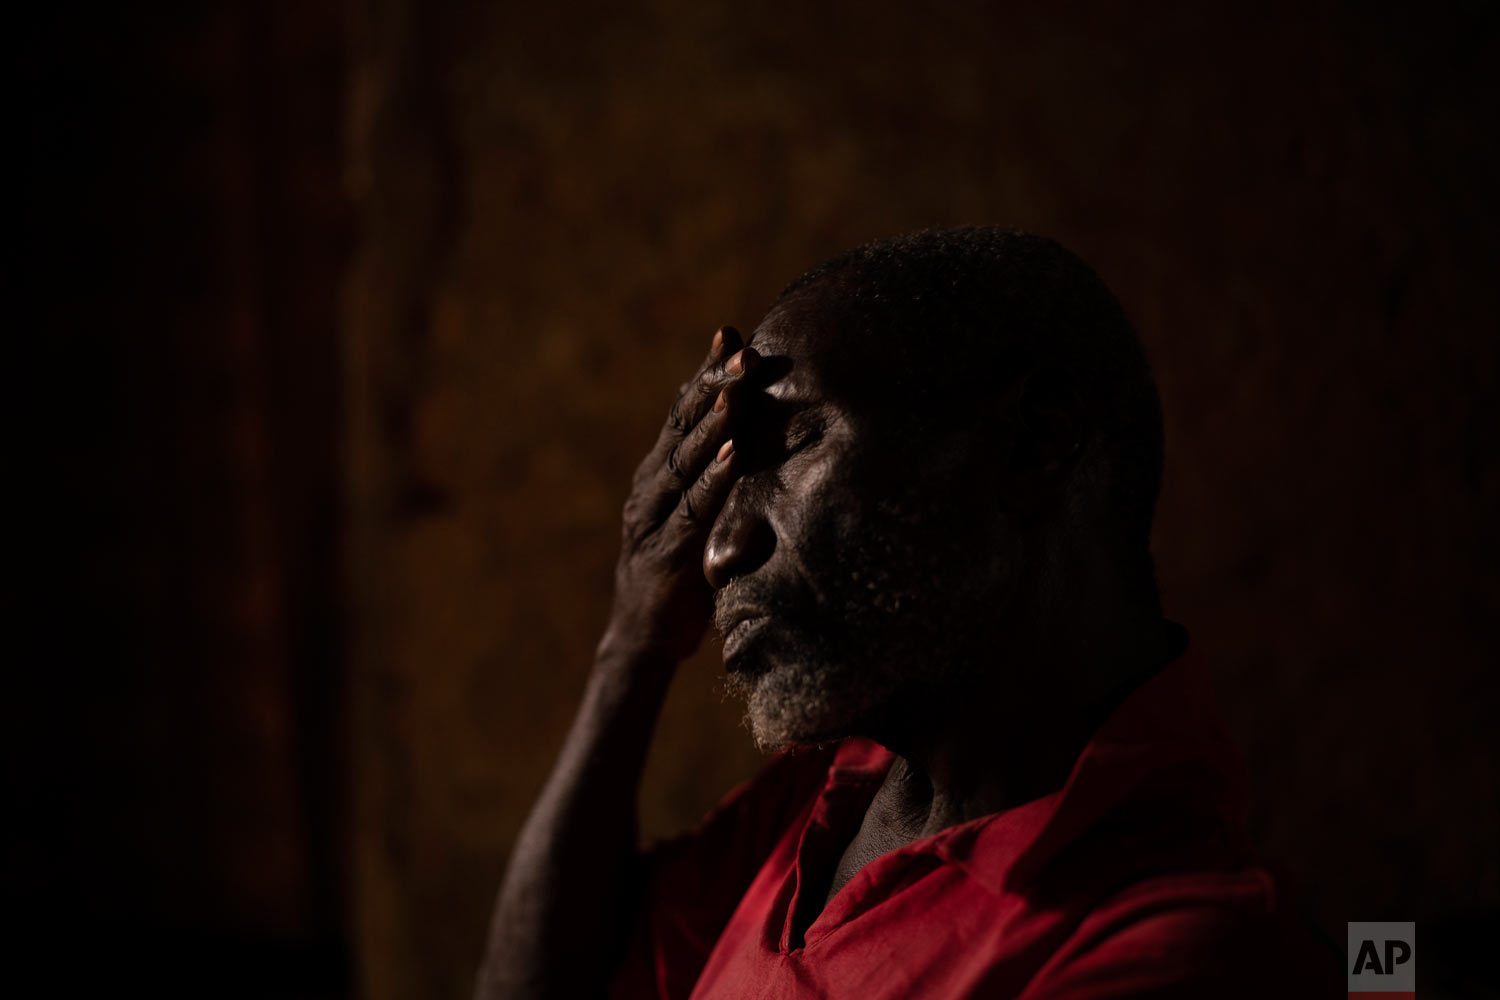 Cheikh Fofana reacts while talking about his missing son as he sits inside his house on Nov. 23, 2018, in Goudiry, Senegal. (AP Photo/Felipe Dana)